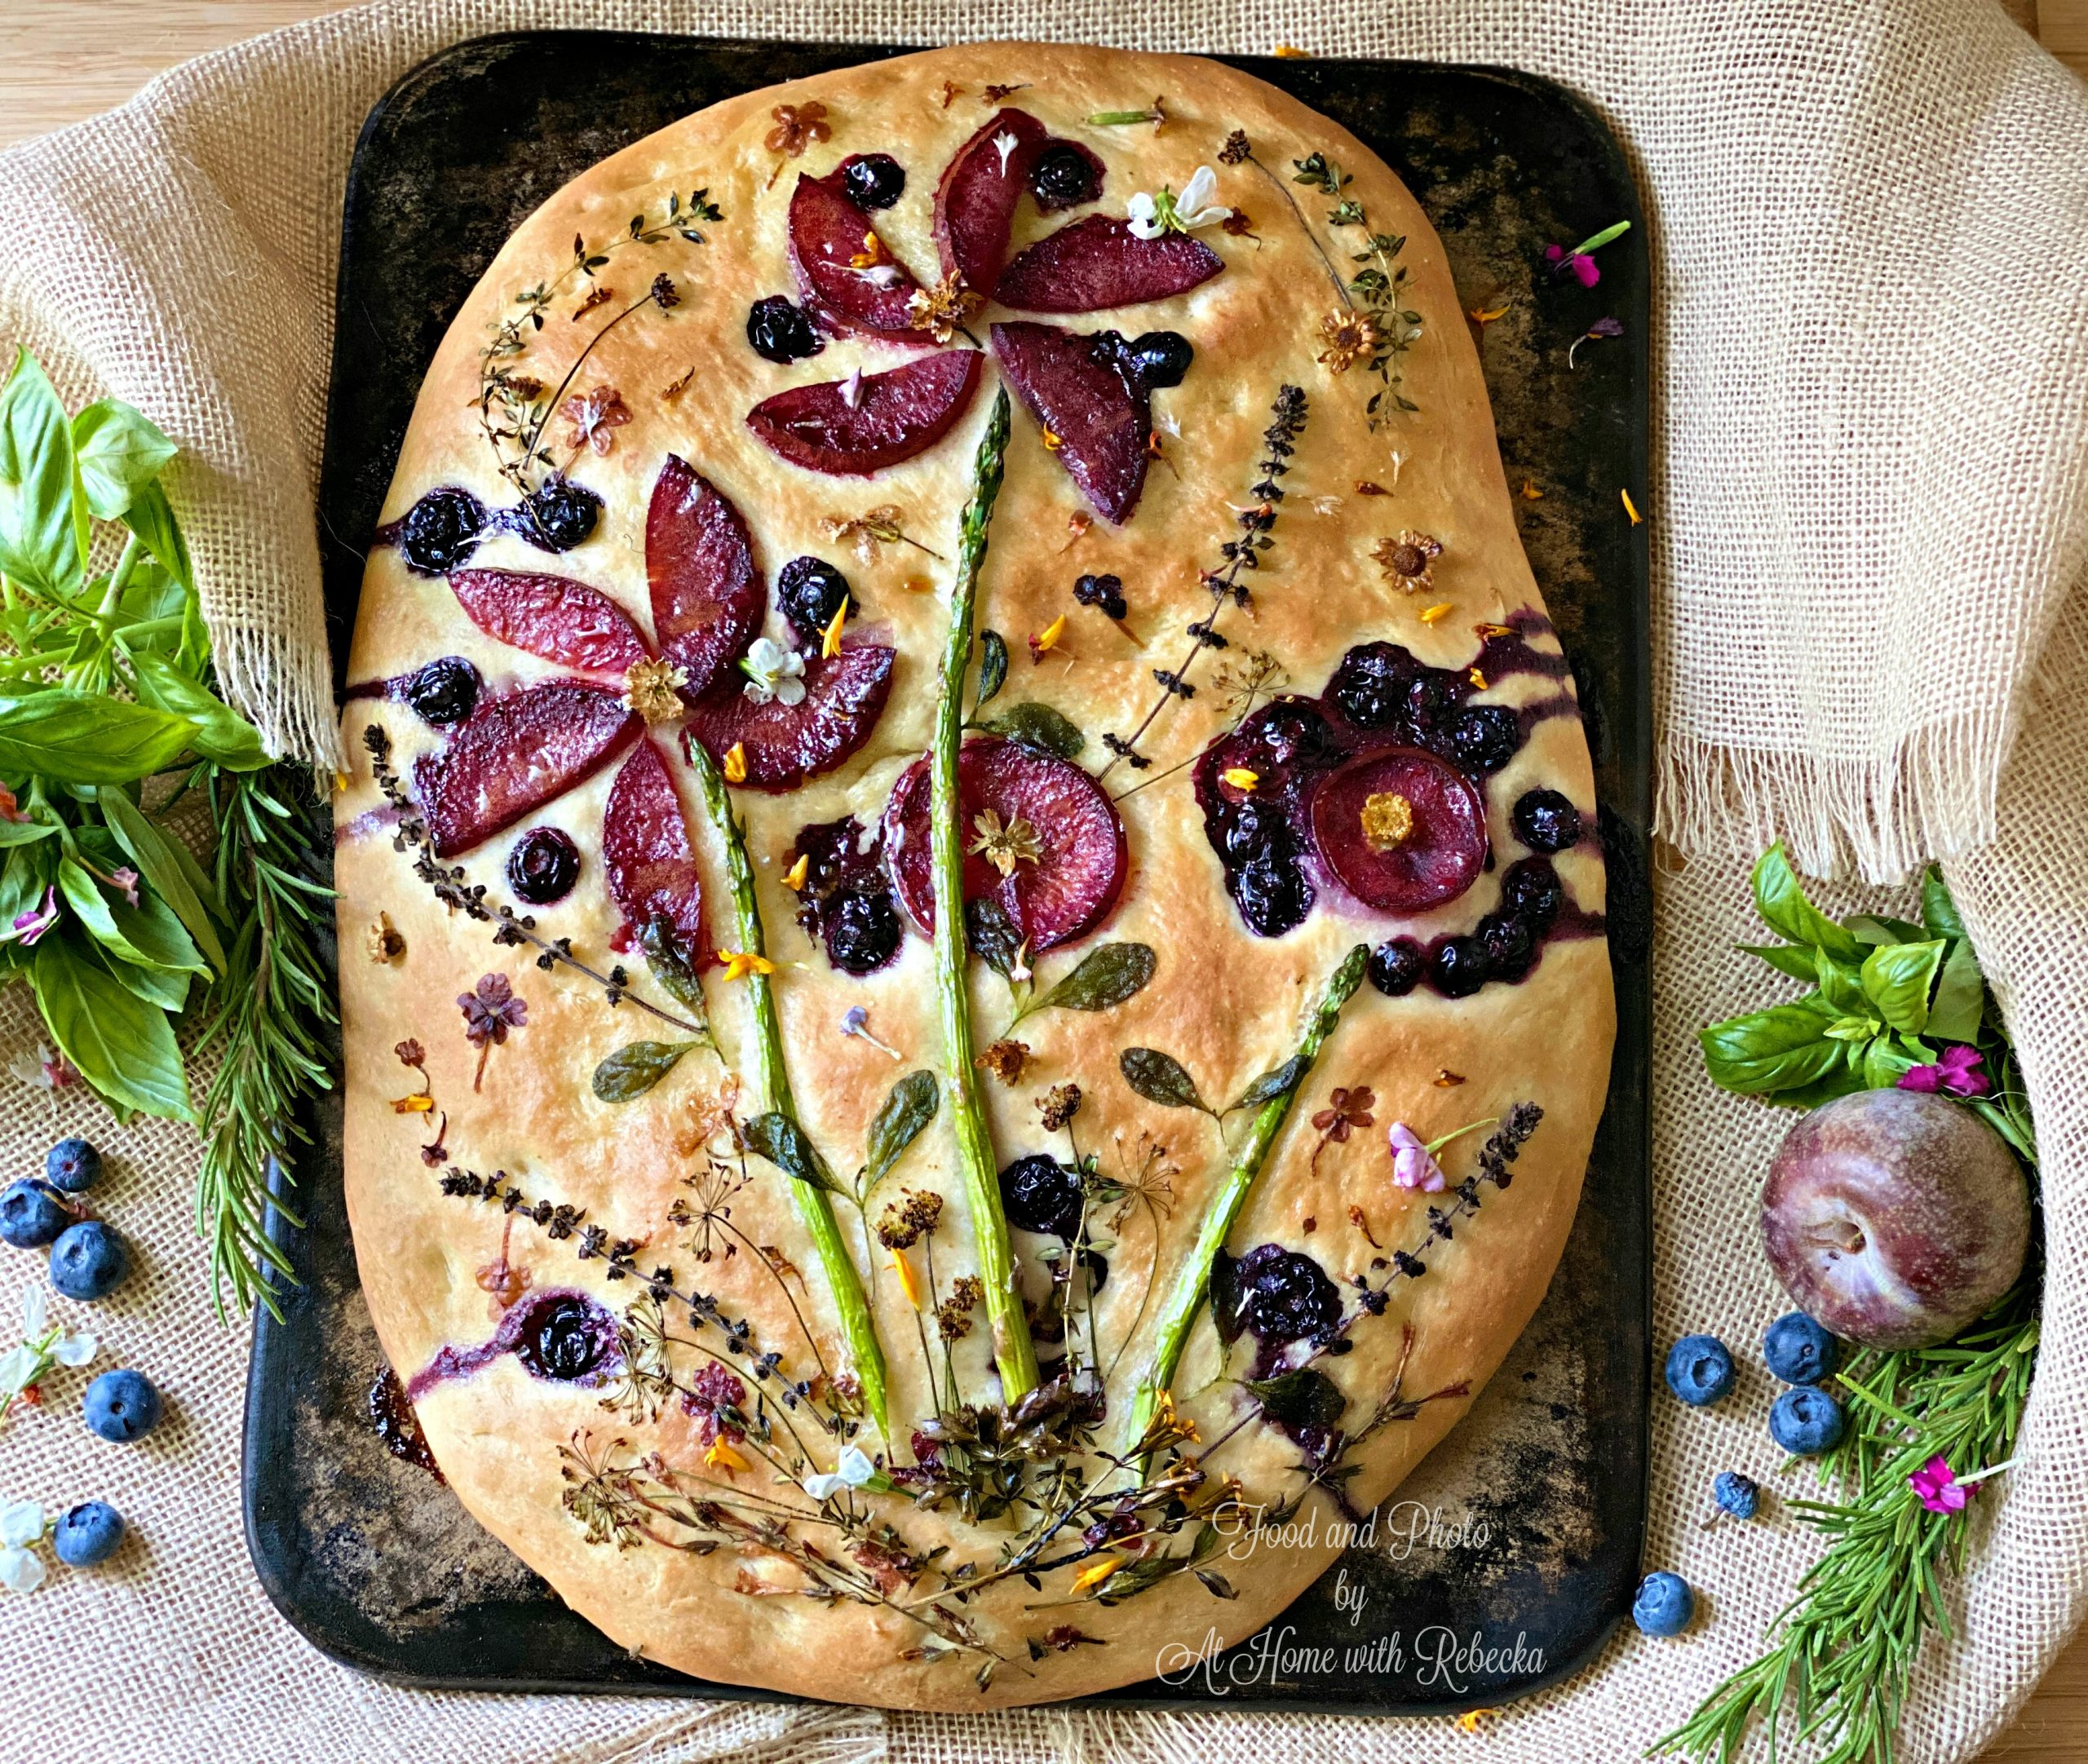 Focaccia art bread ©At home with Rebecka